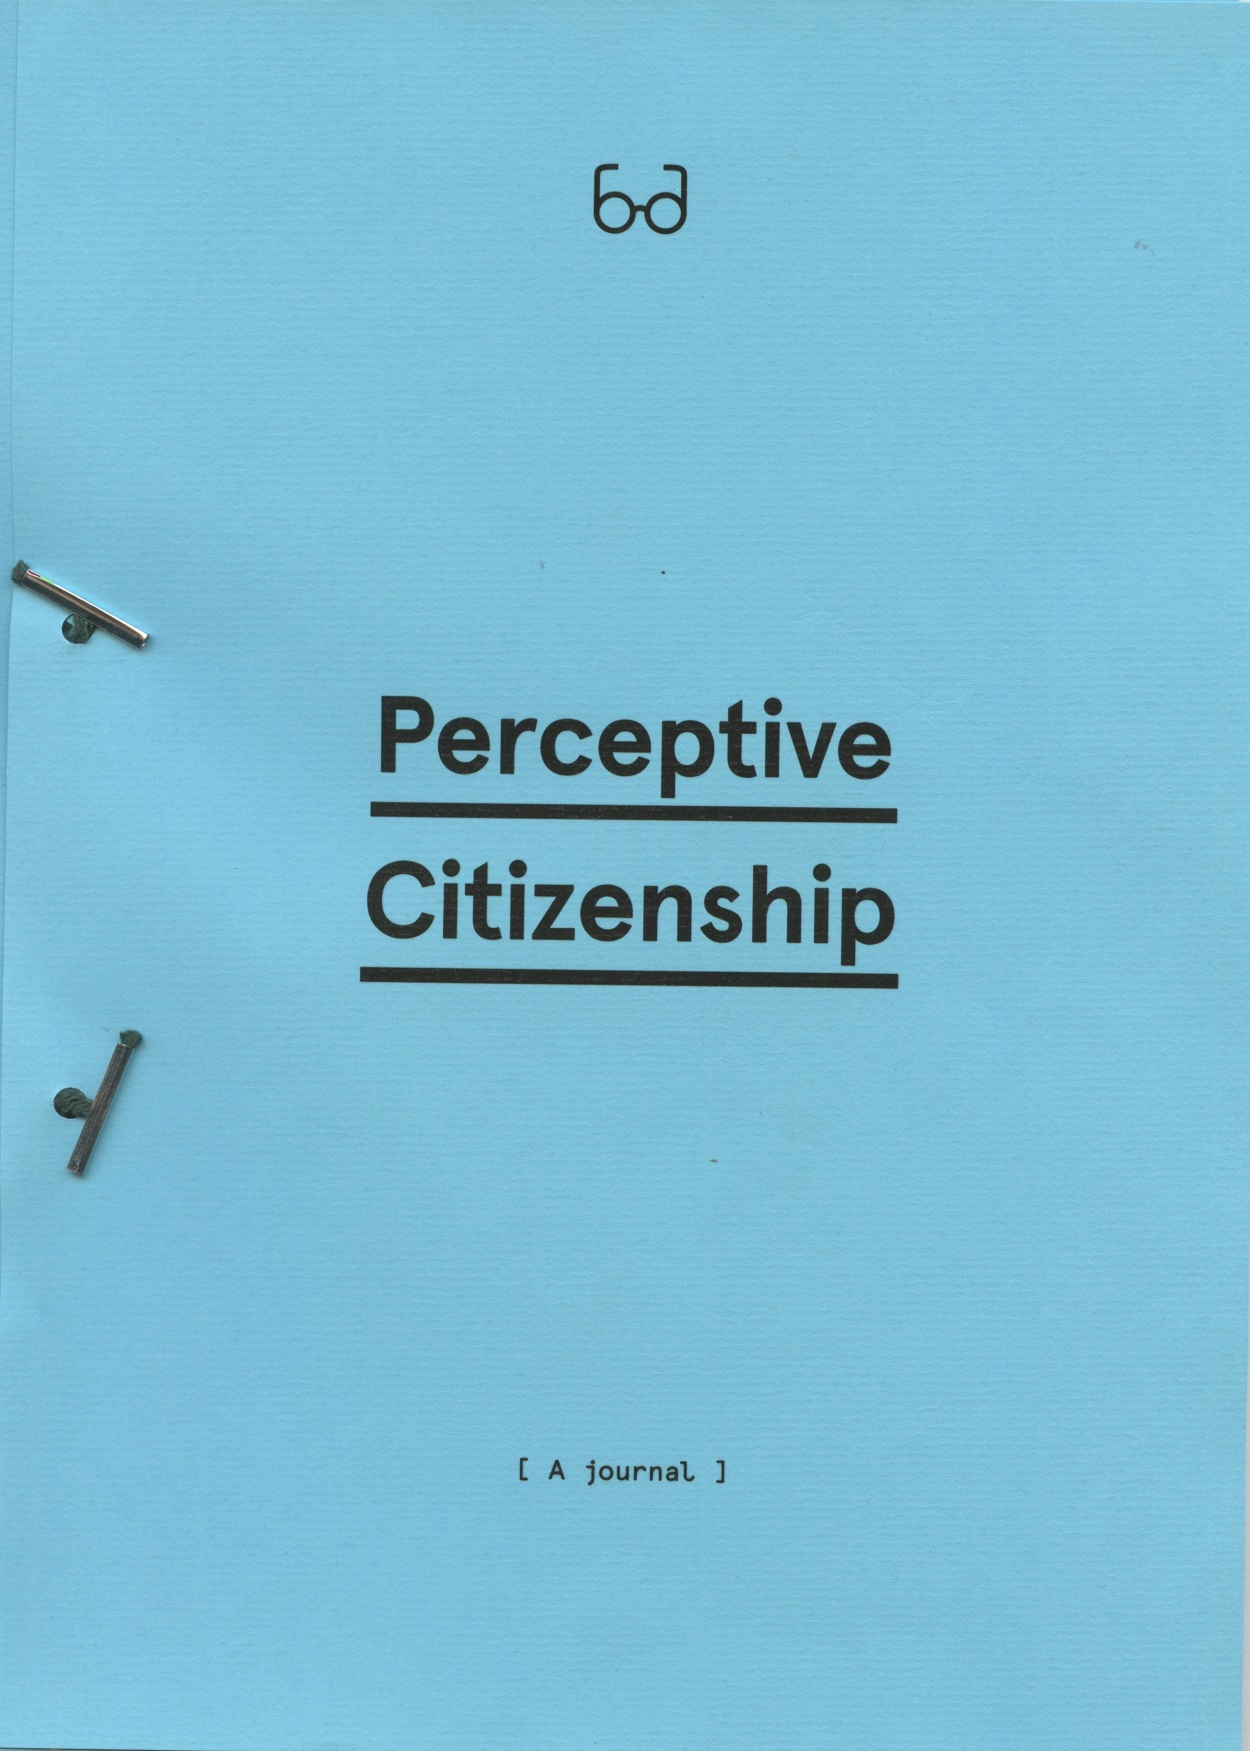 perceptive citizenship luca picardi perceptive citizenship is a publication that examines the notion of citizenship it does so through texts essays and images presenting a wide range of